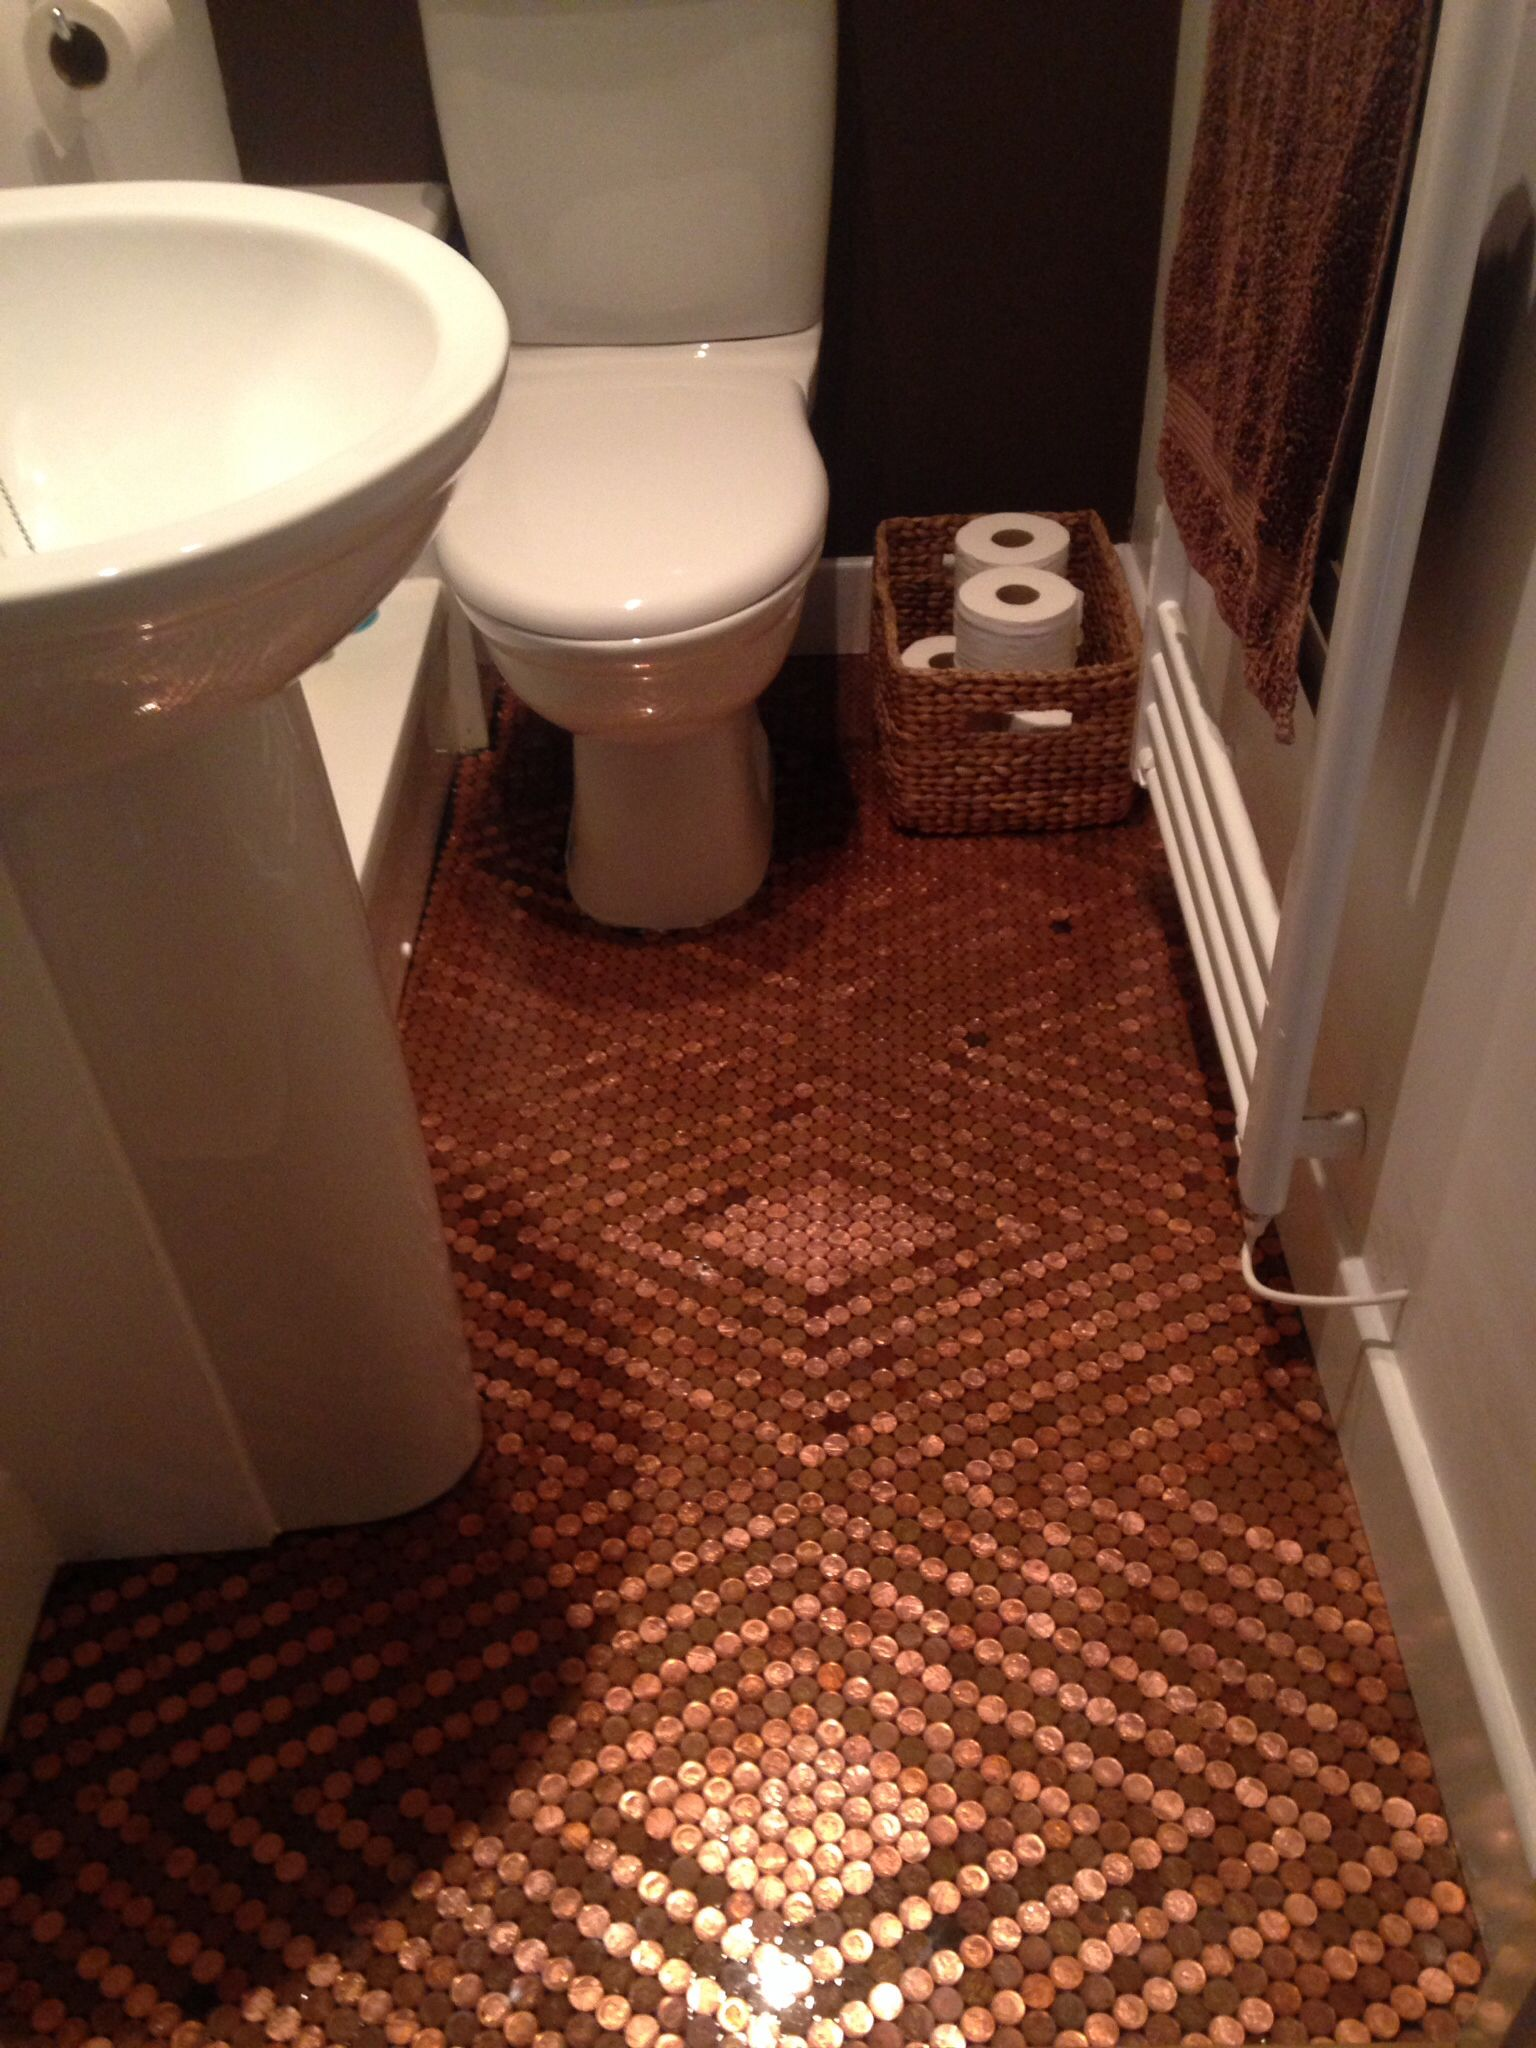 The best diy flooring ideas of pinterest pinterest pennies do the whole damn thing in pennies haha that should add a bit of weight when pulling the bad boy solutioingenieria Images